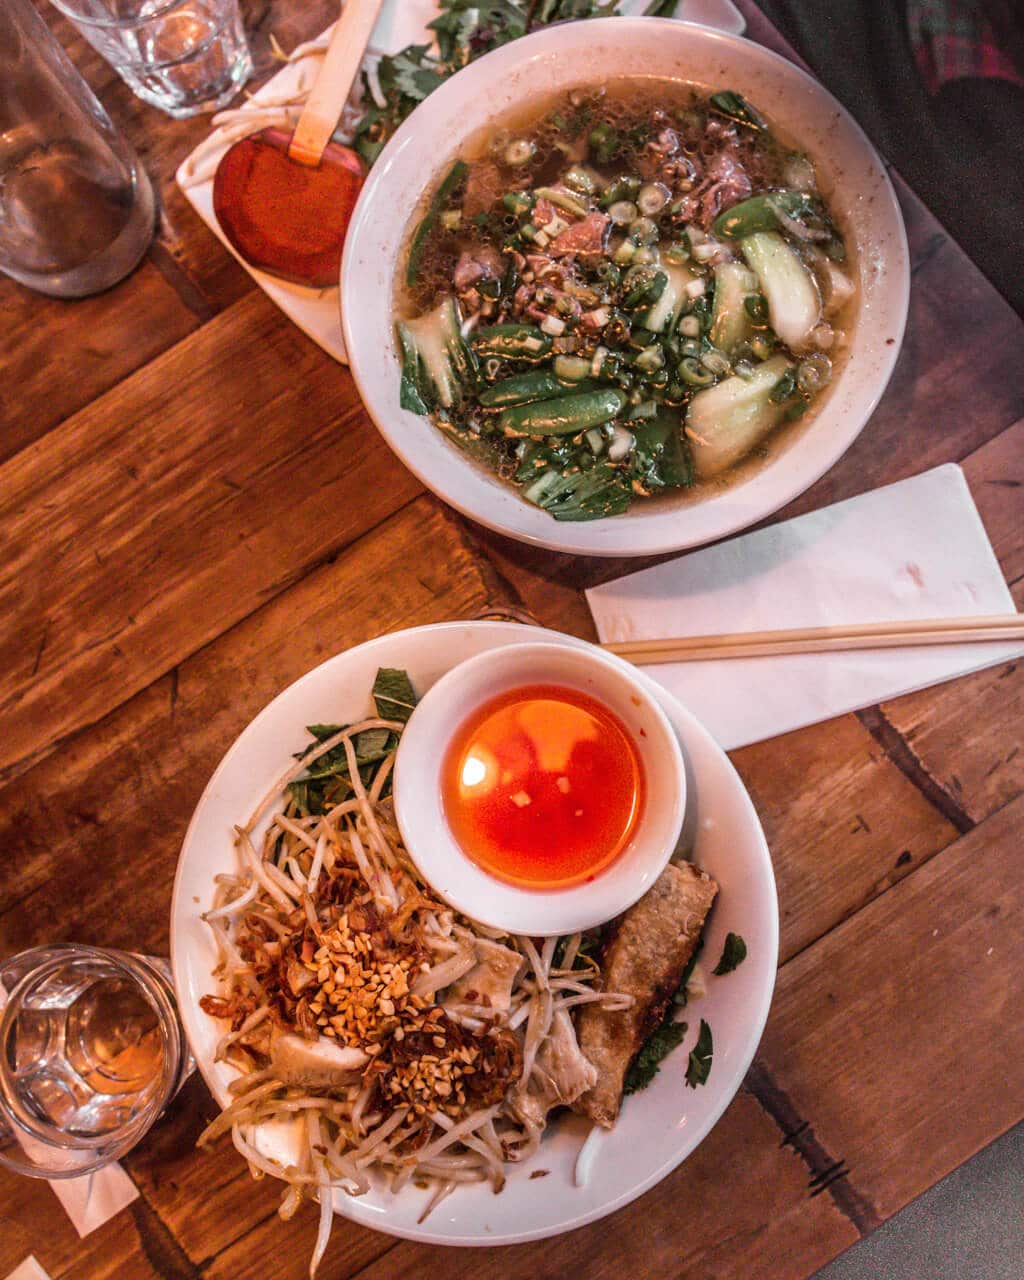 London food guide - my recommendations for restaurants and street food in the capital of England. | PHO SOHO